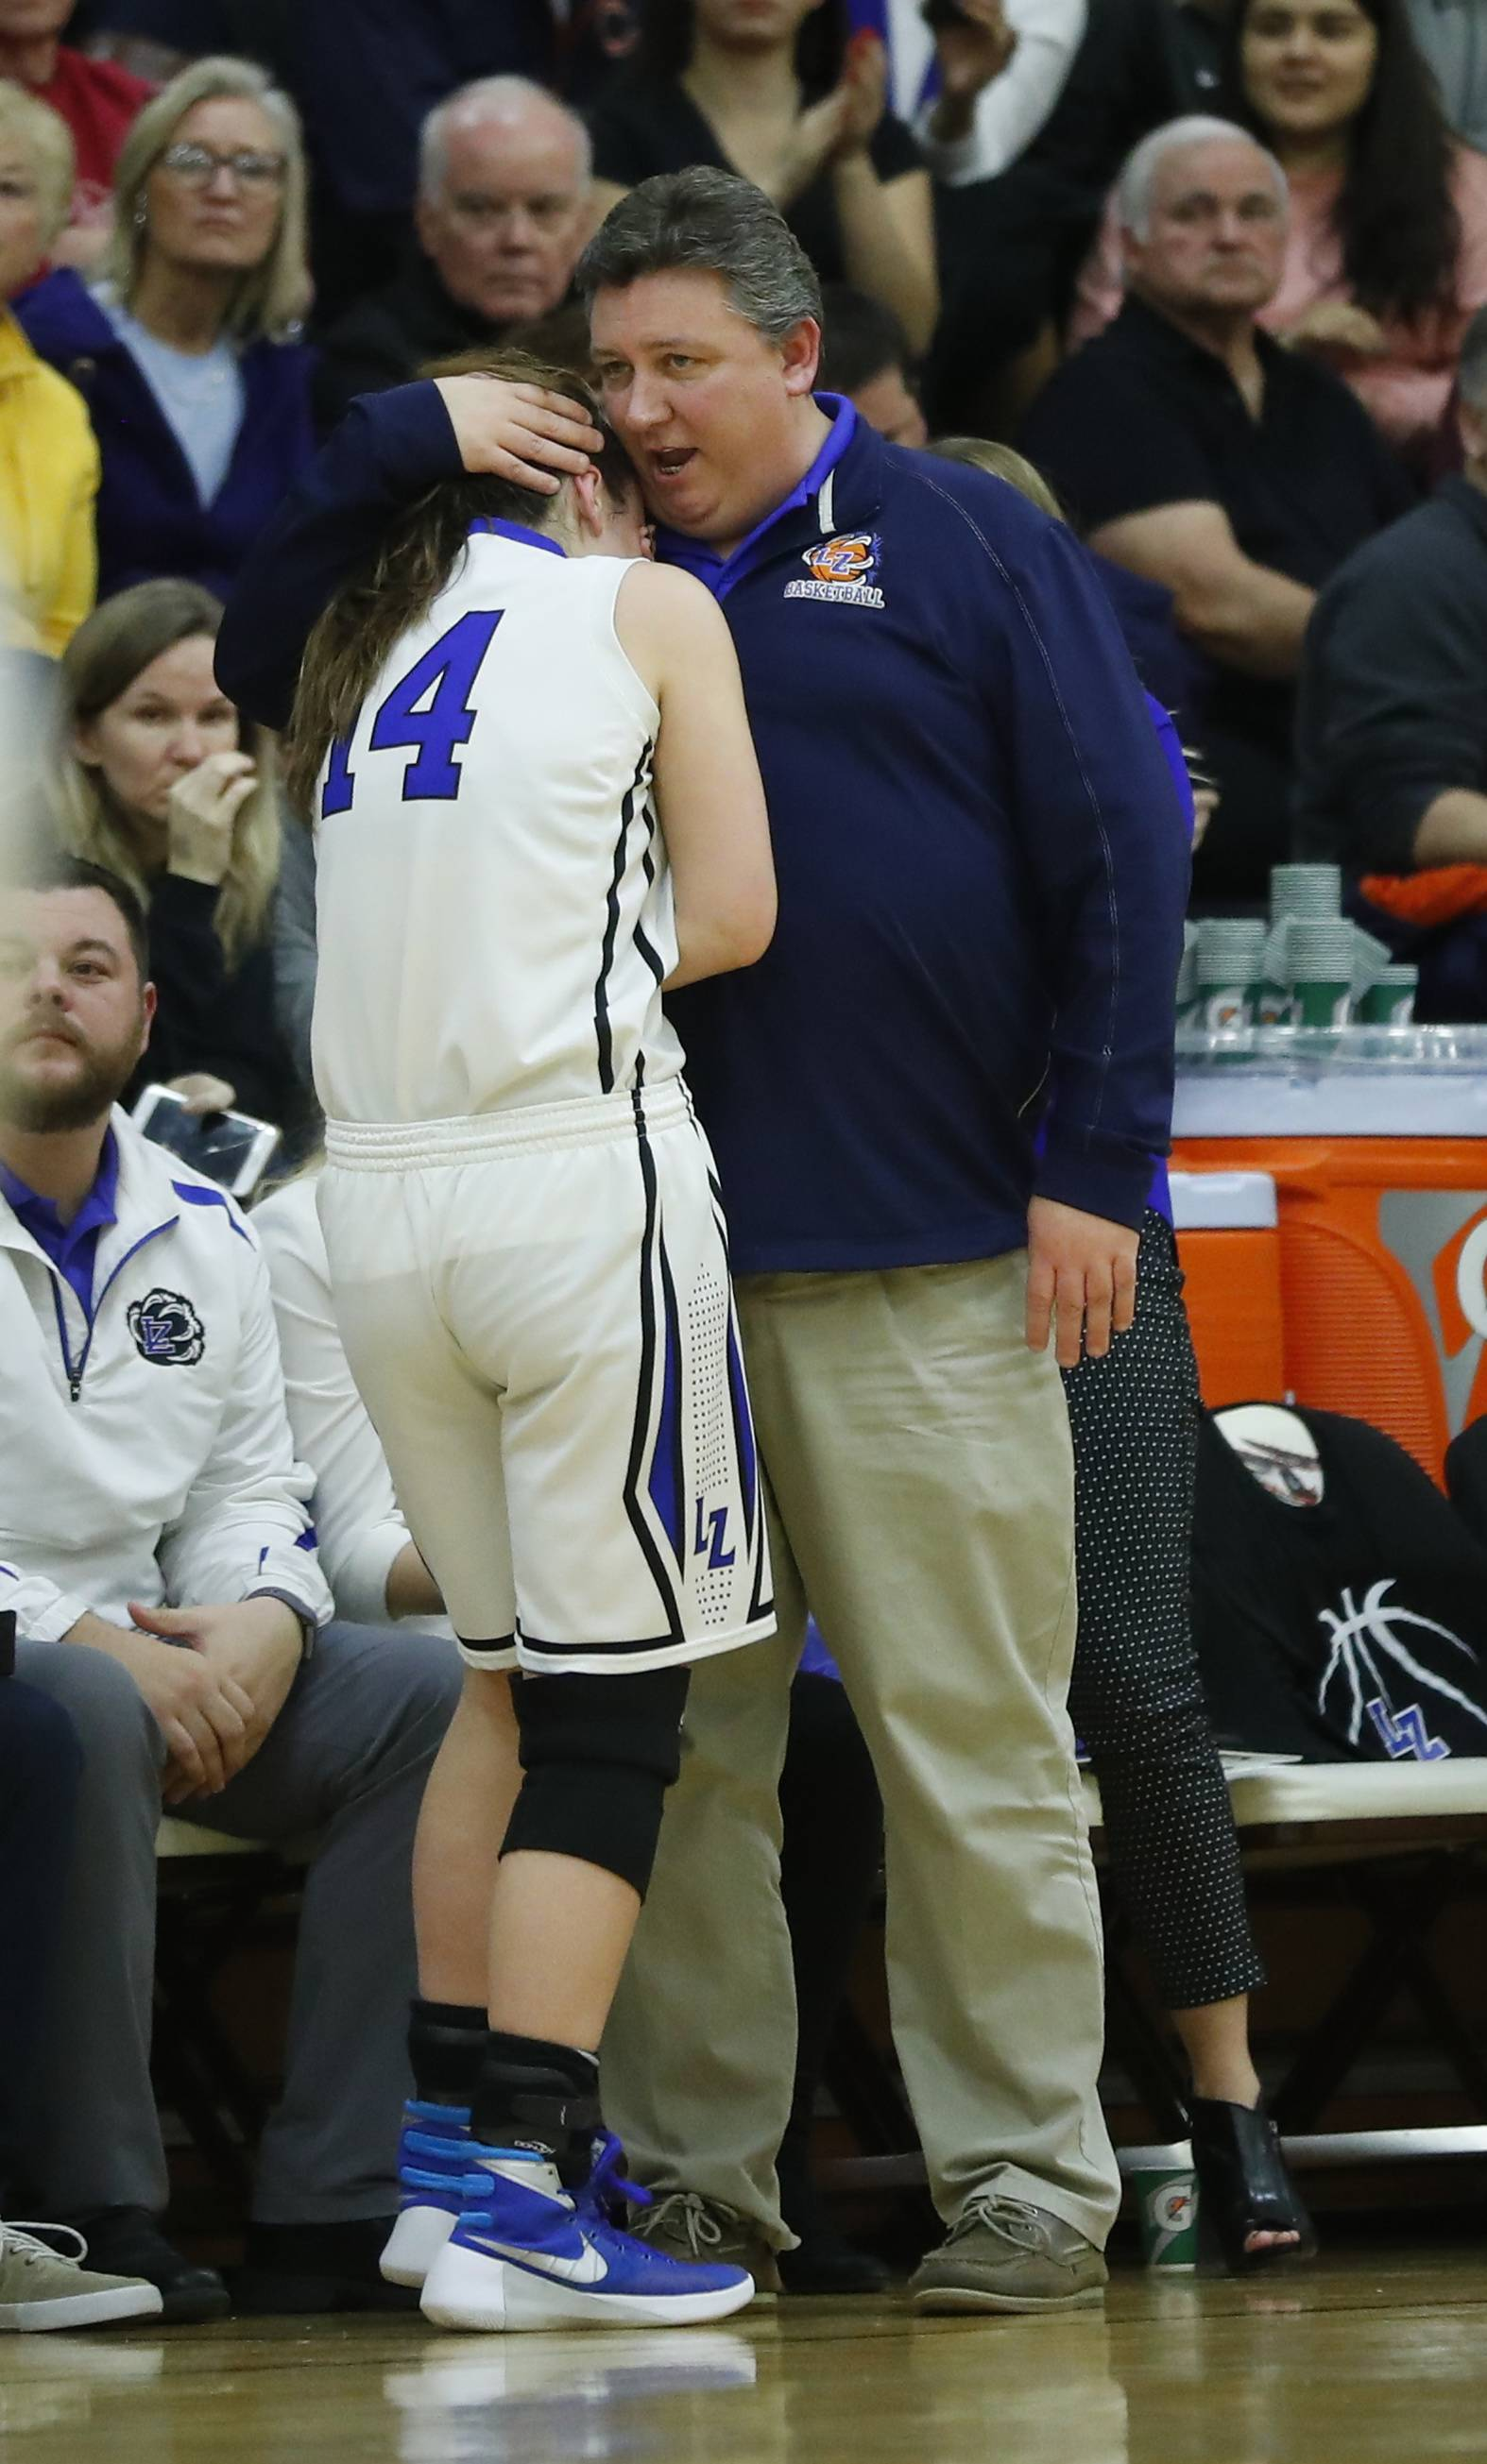 Lake Zurich's McKenna Zobel is consoled by coach Chris Bennett during the Class 4A supersectional at Hersey High School in Arlington Heights on Monday.